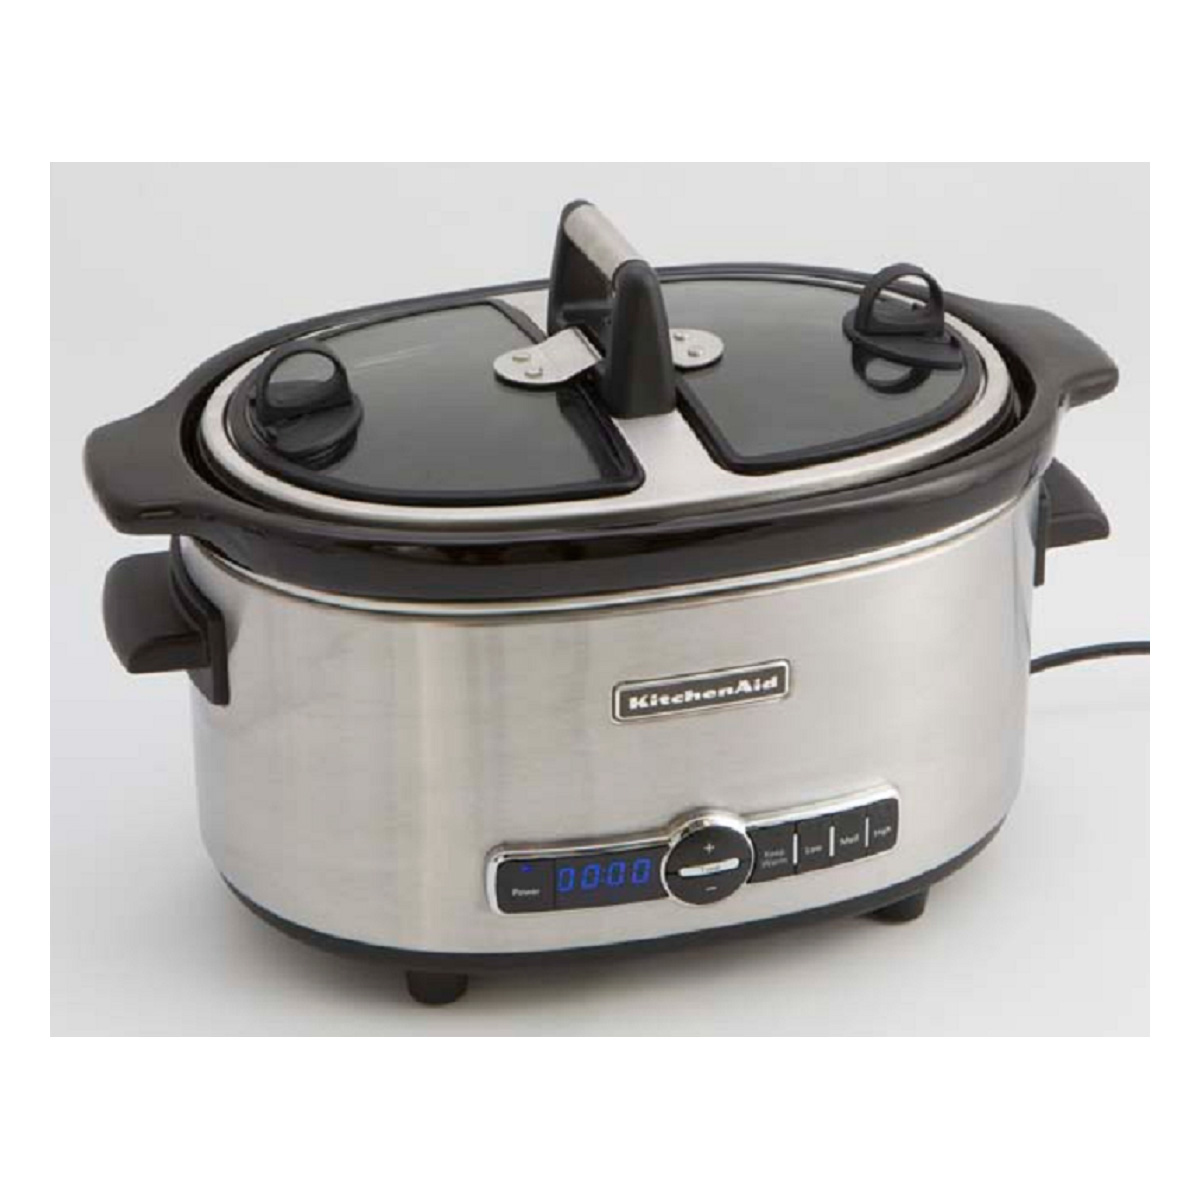 KitchenAid 92395 Artisan Slow Cooker